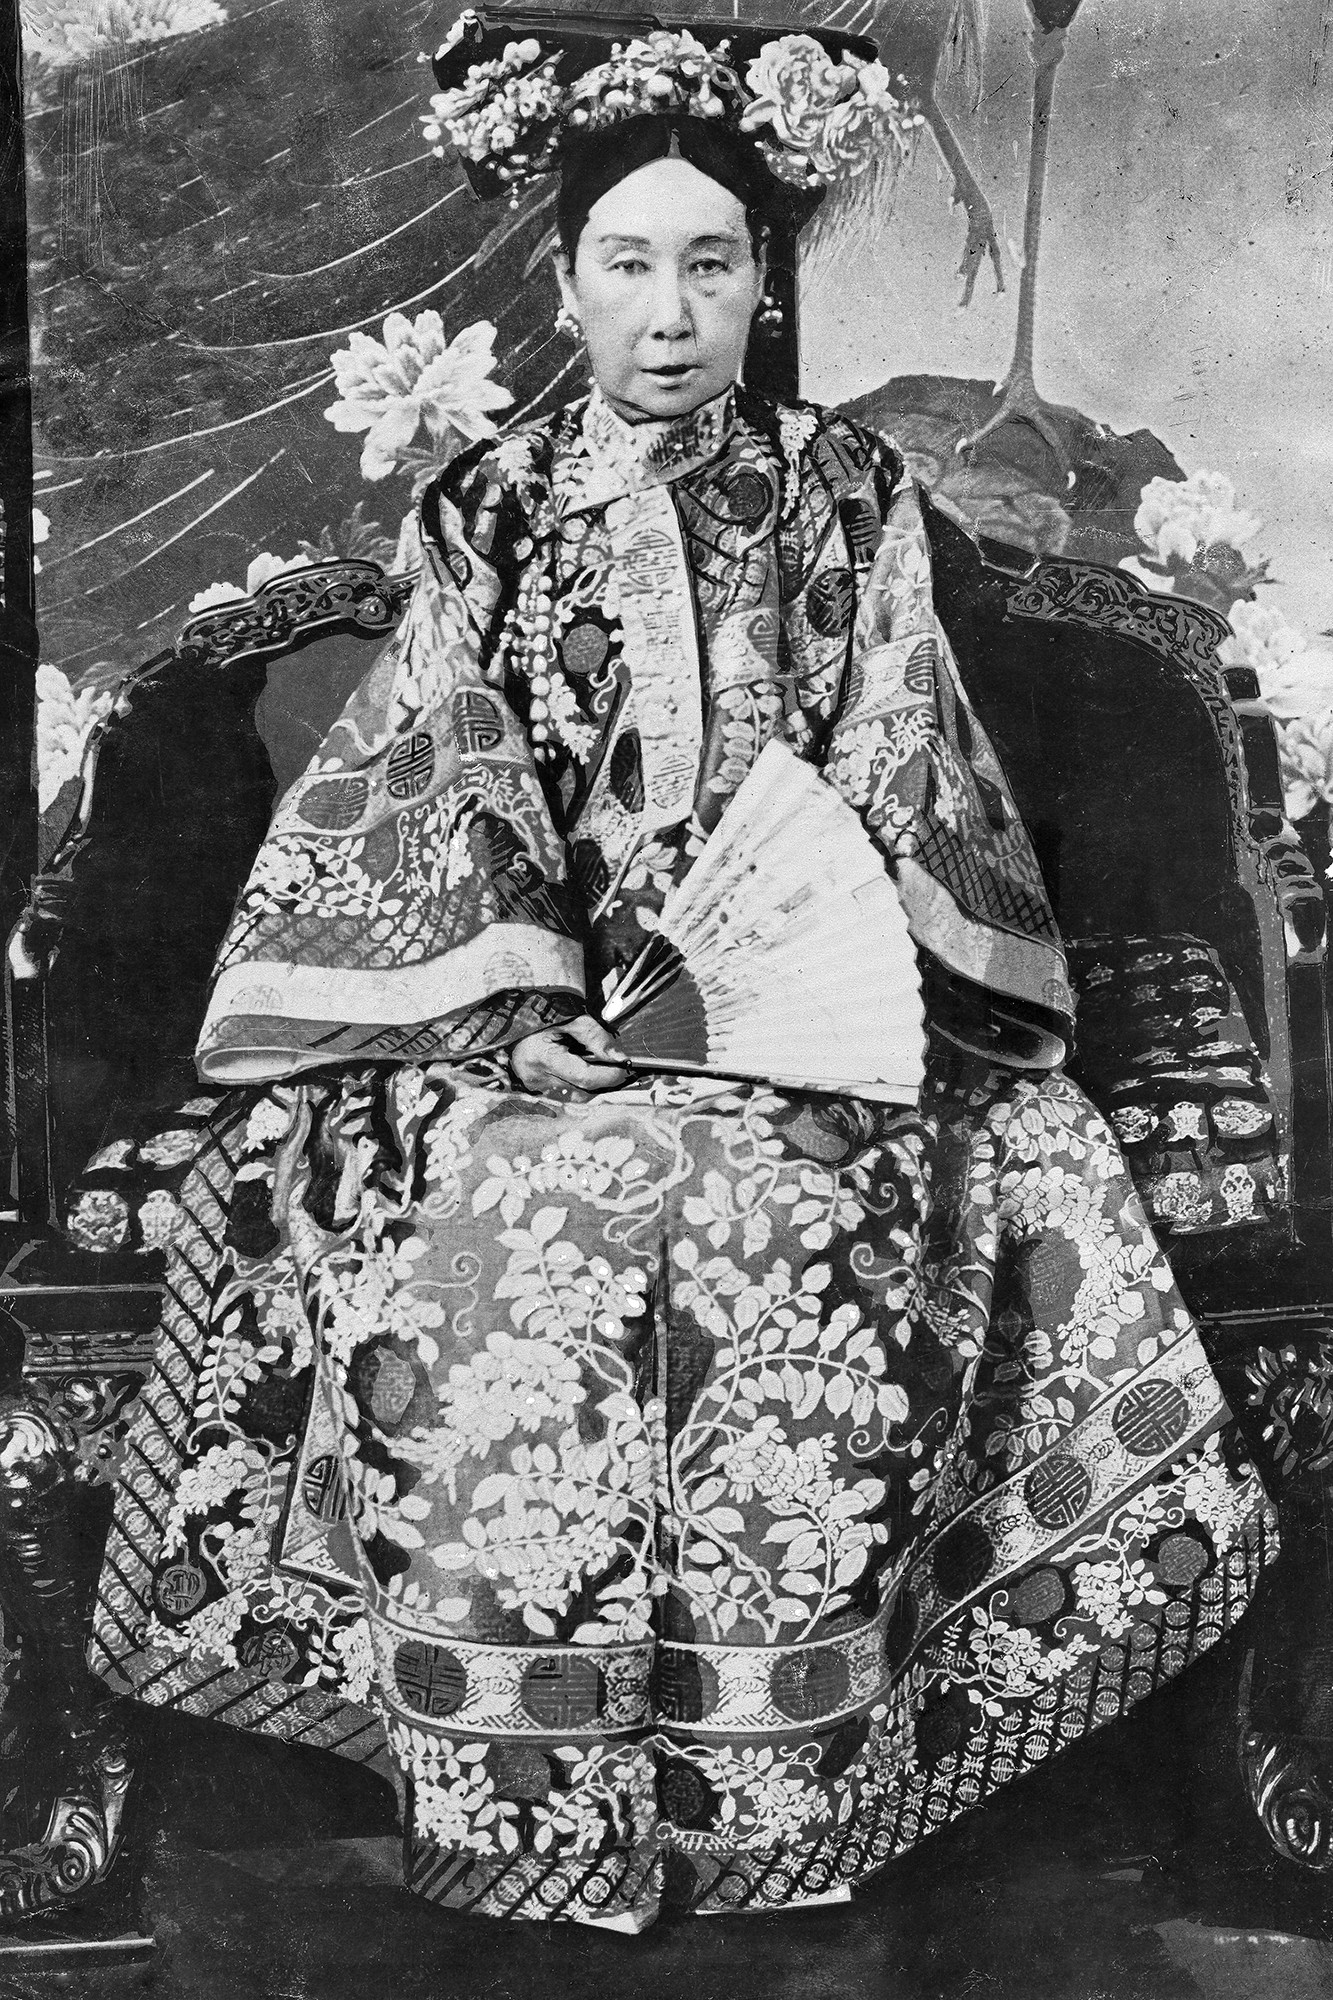 Chinese Empress Dowager Cixi, *1835-1908+, portrait c1900